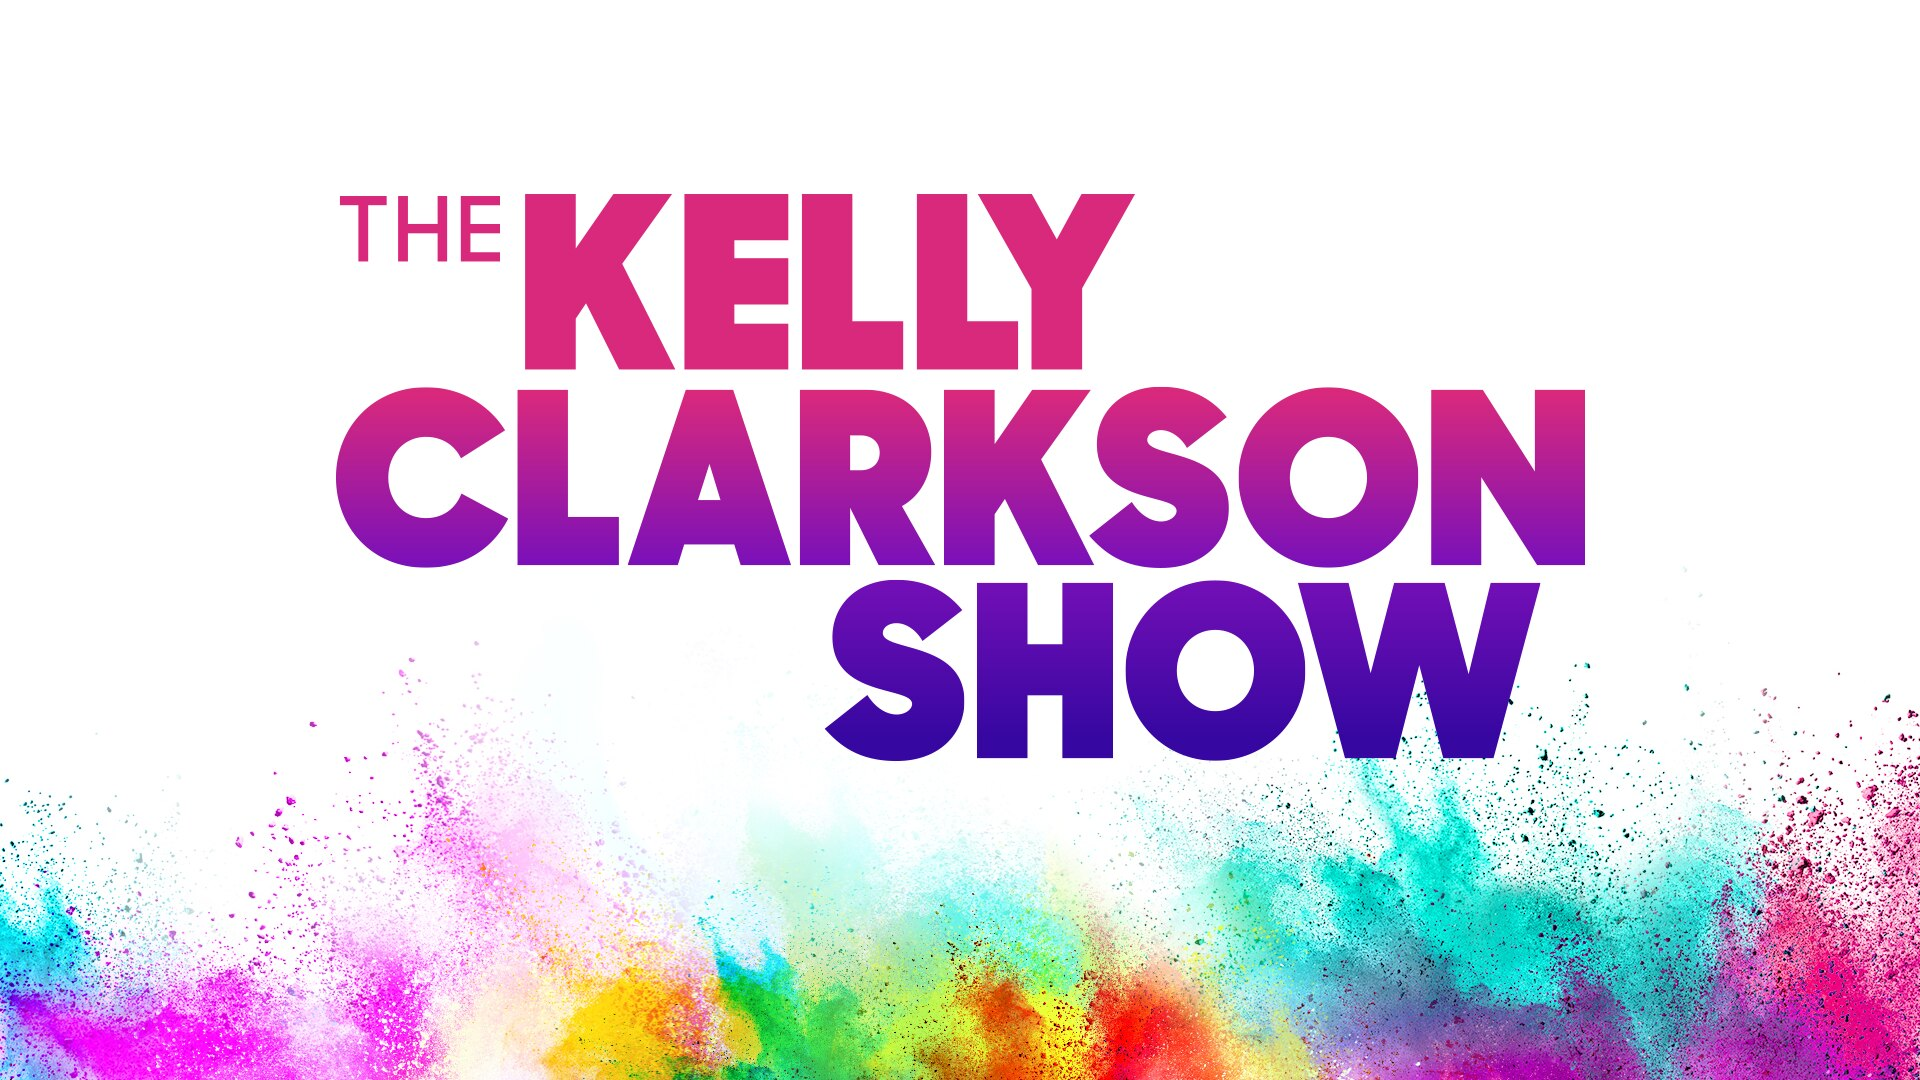 Chris berman commercial with kelly clarkson